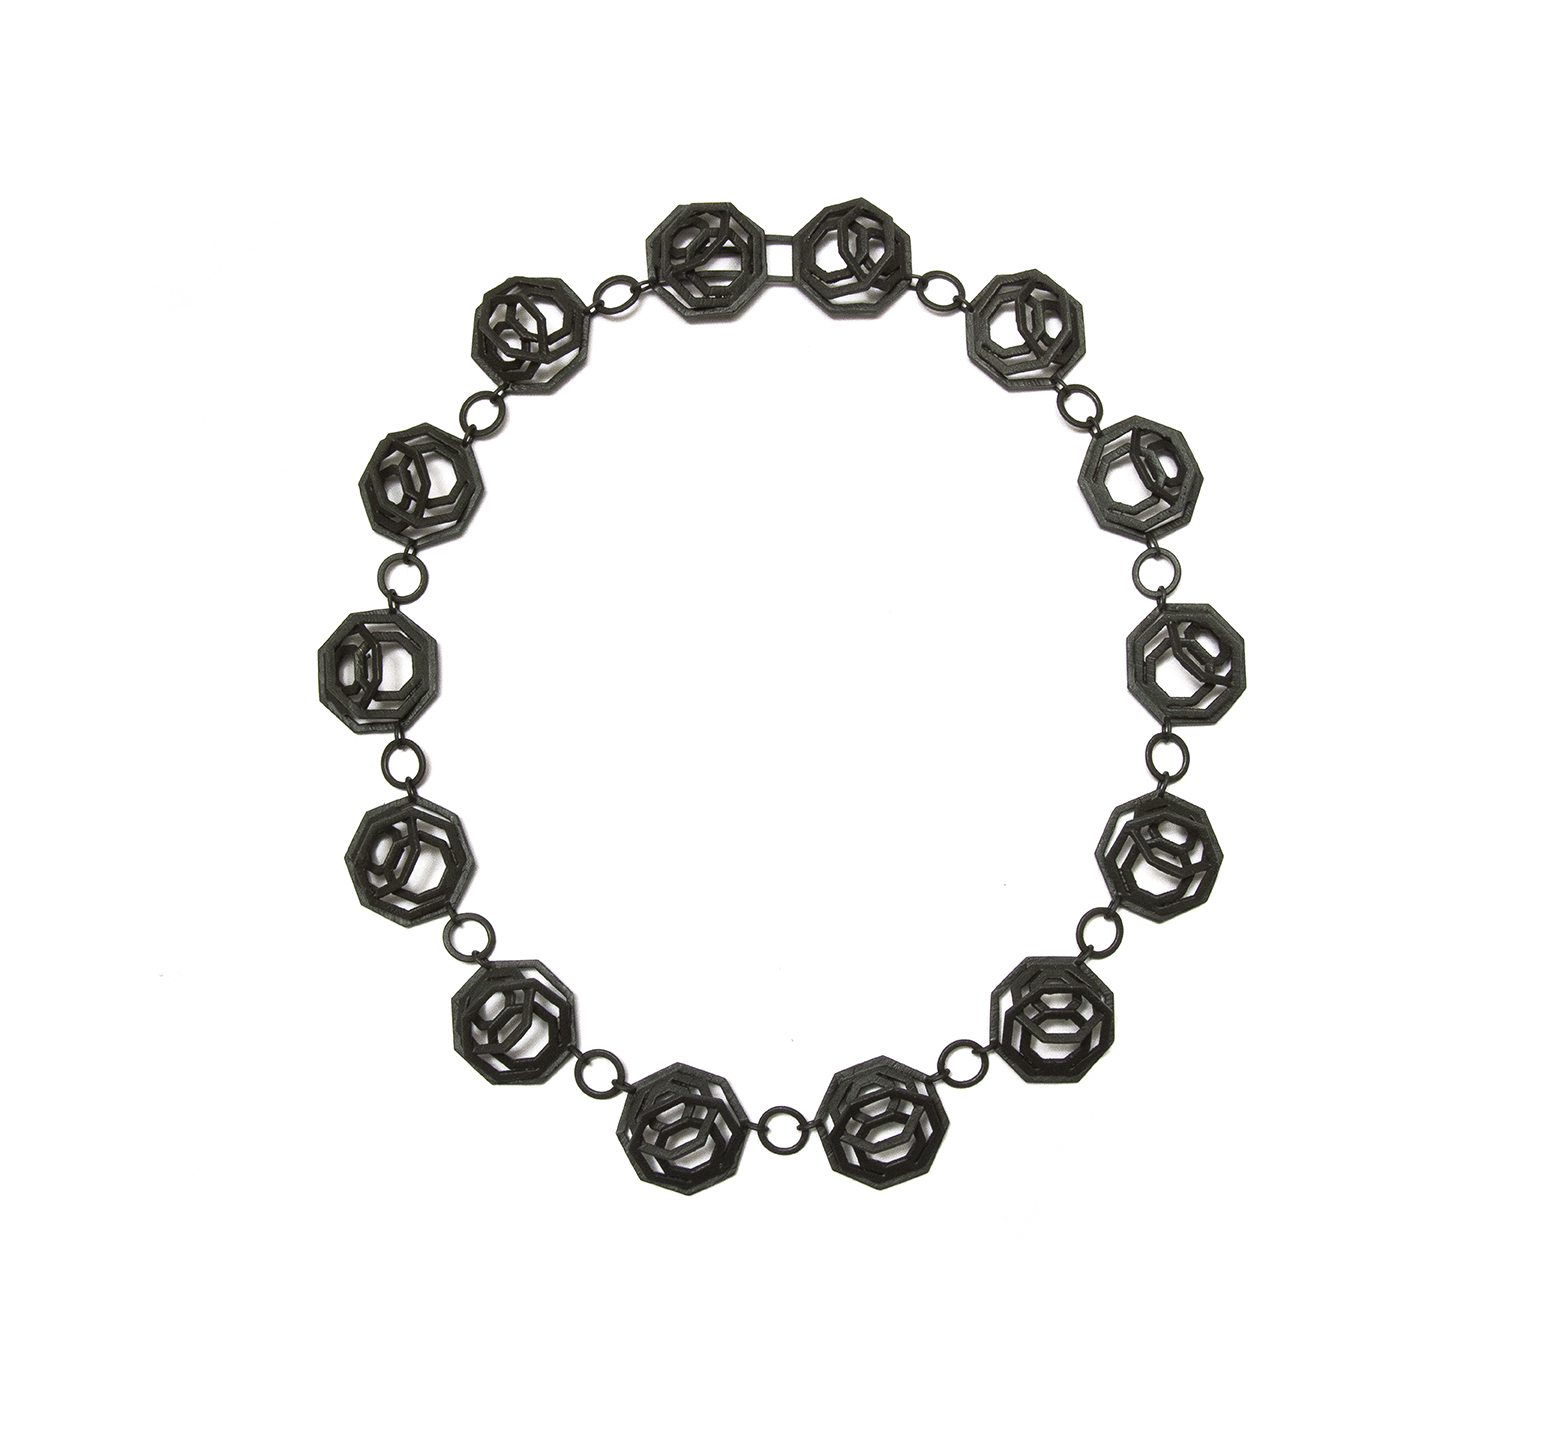 Octagonal Chaos Rising necklace, Black rhodium on sterling silver